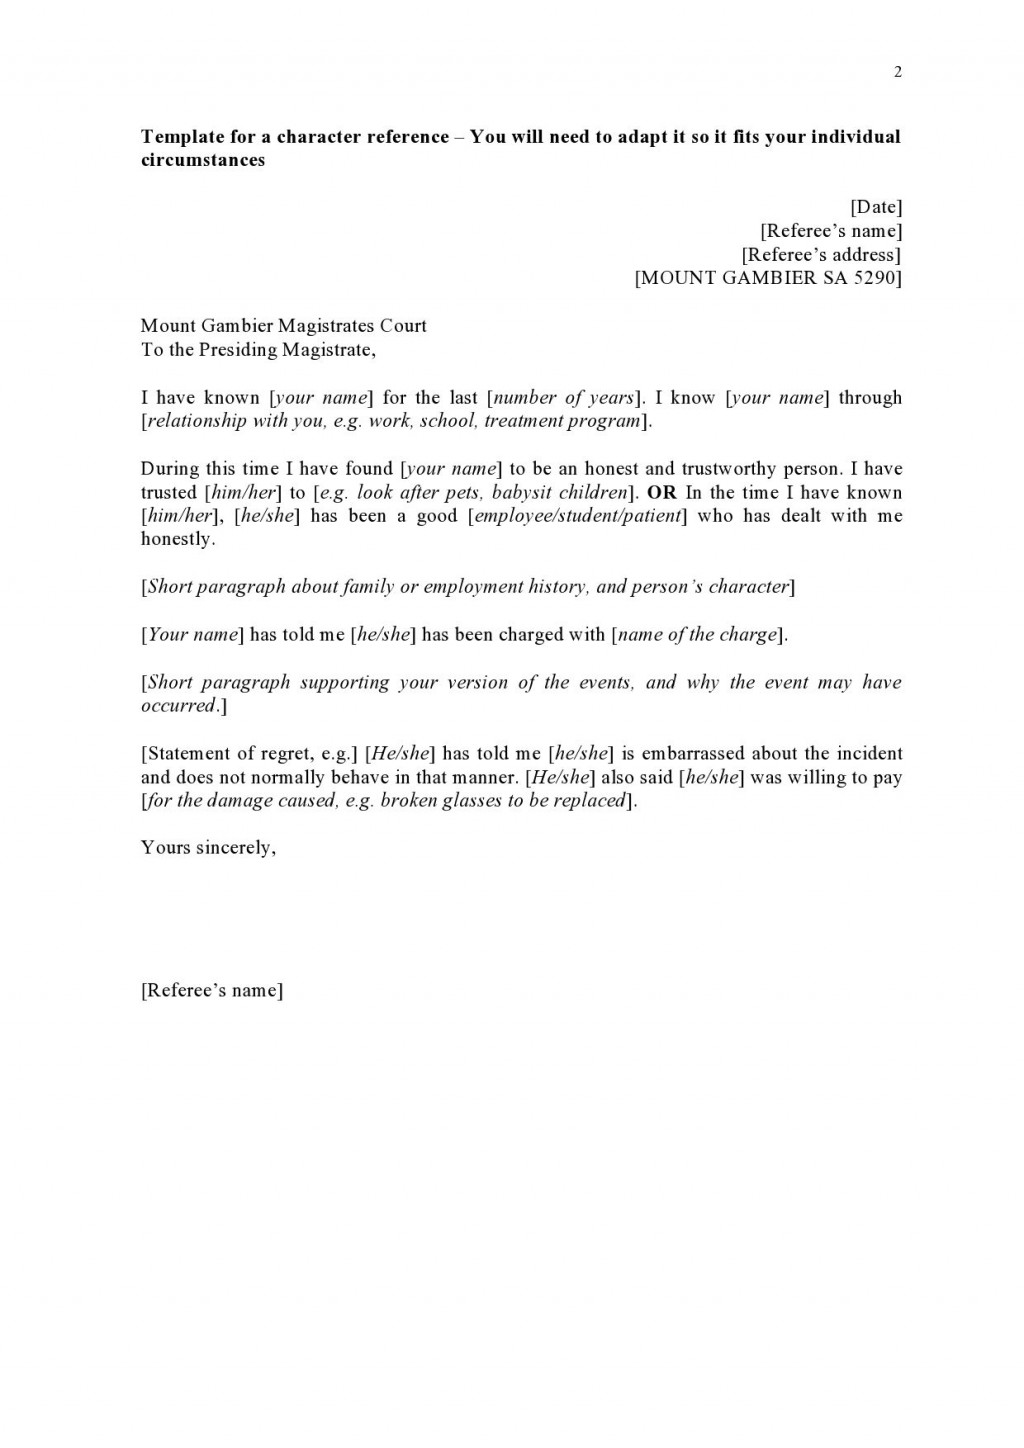 002 Breathtaking Free Reference Letter Template Word Inspiration  Personal For EmploymentLarge